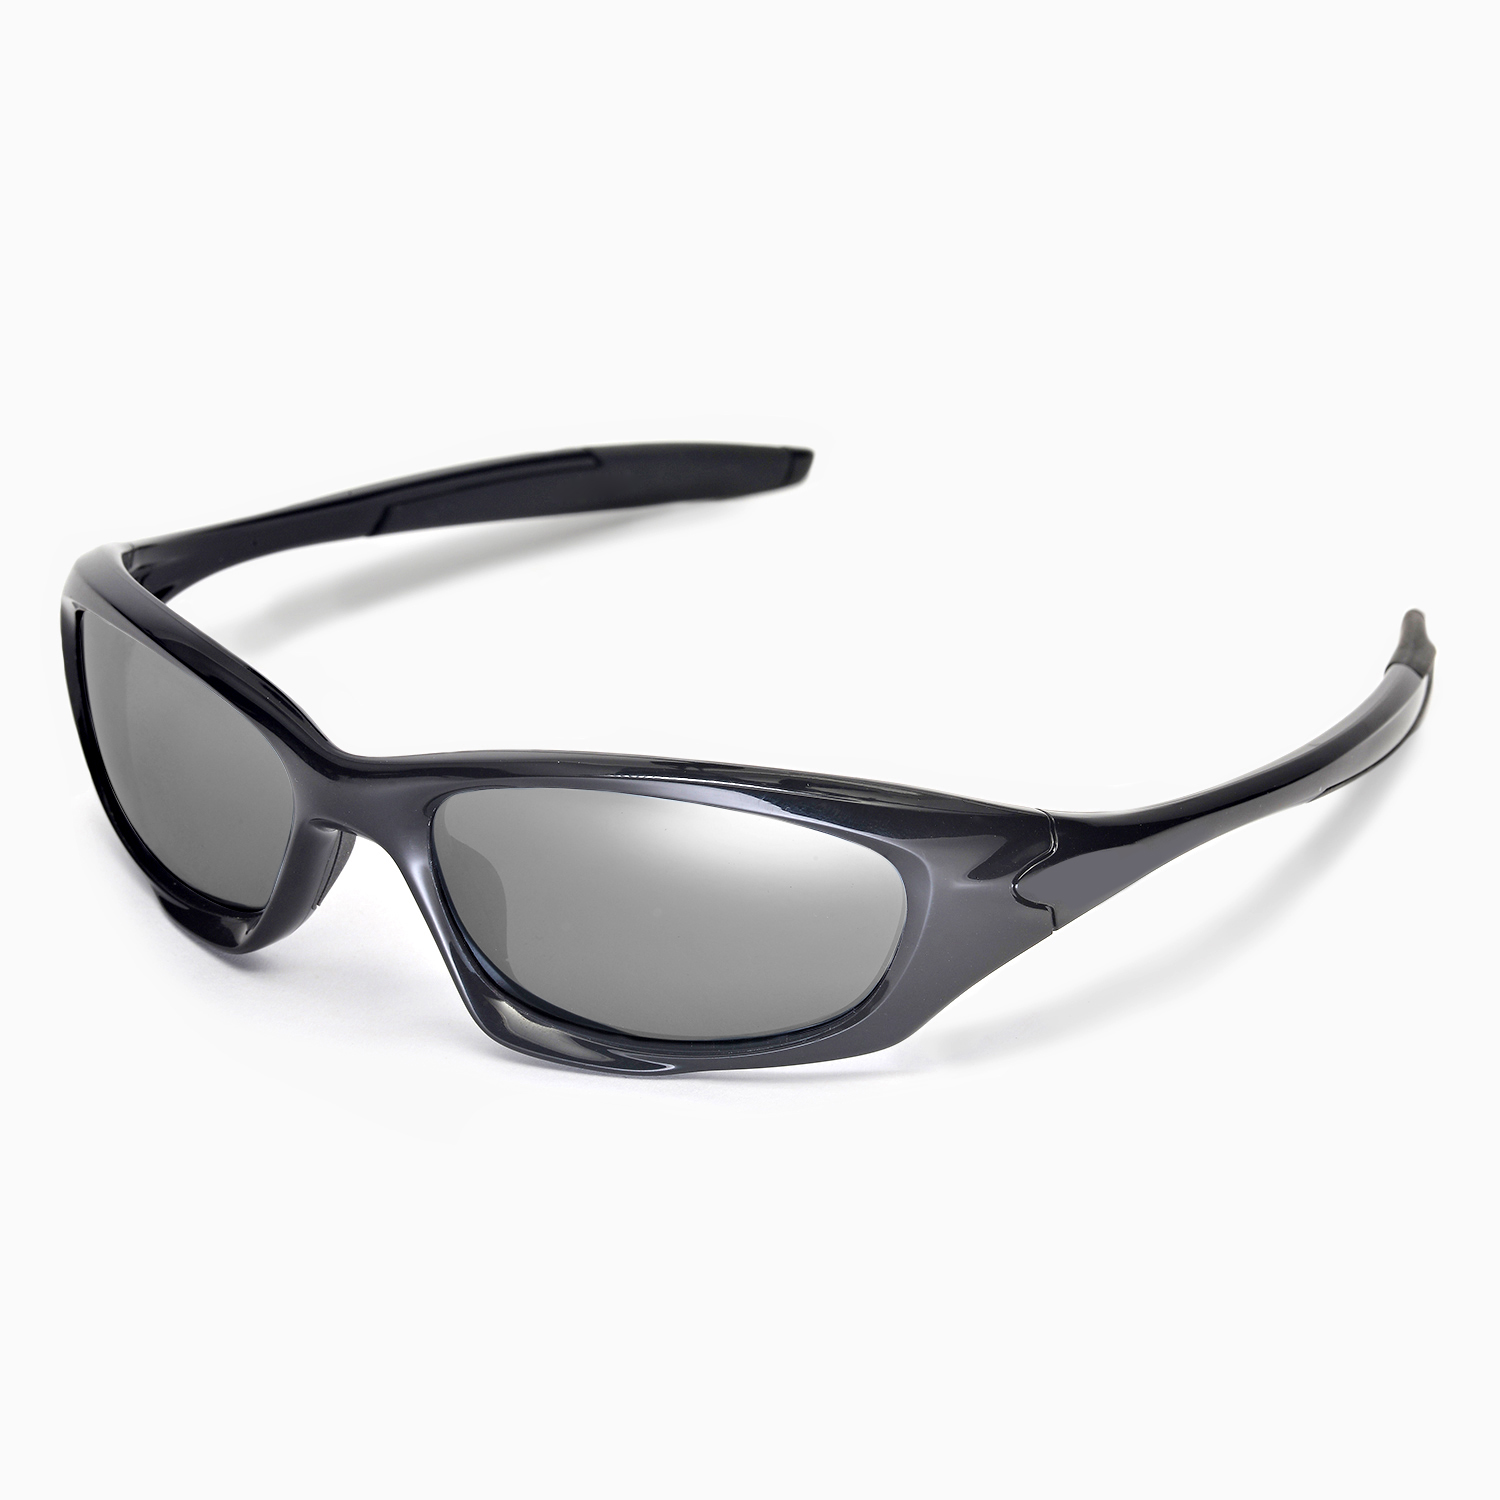 caf96a295f Oakley Sunglasses Parts Sale « Heritage Malta